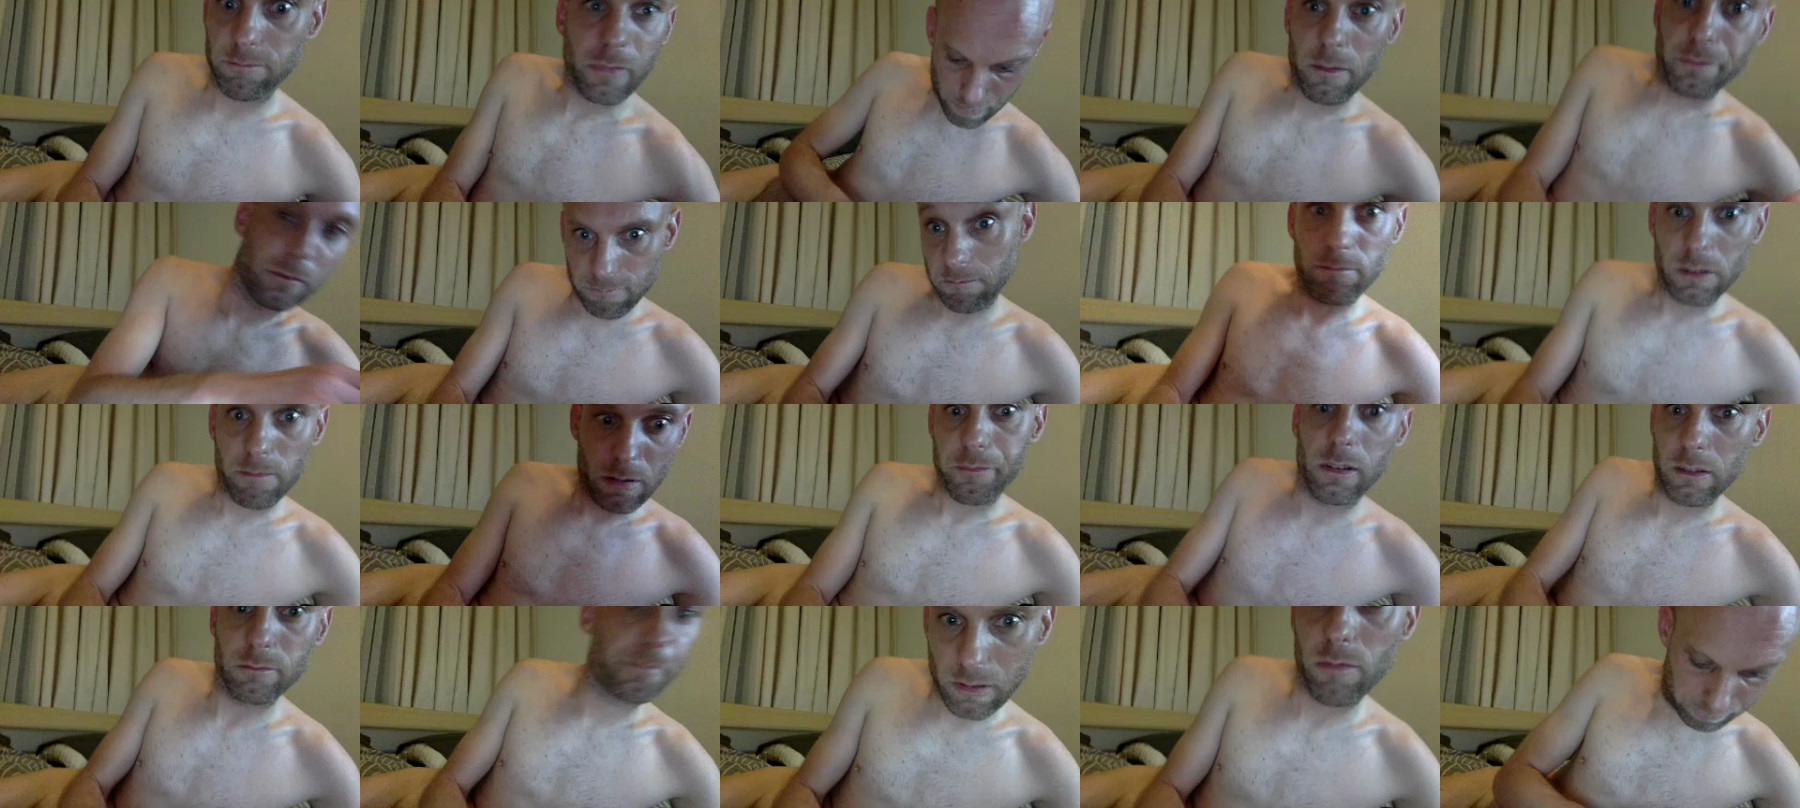 funforall37 Cam4 10-05-2021 Recorded Video Topless